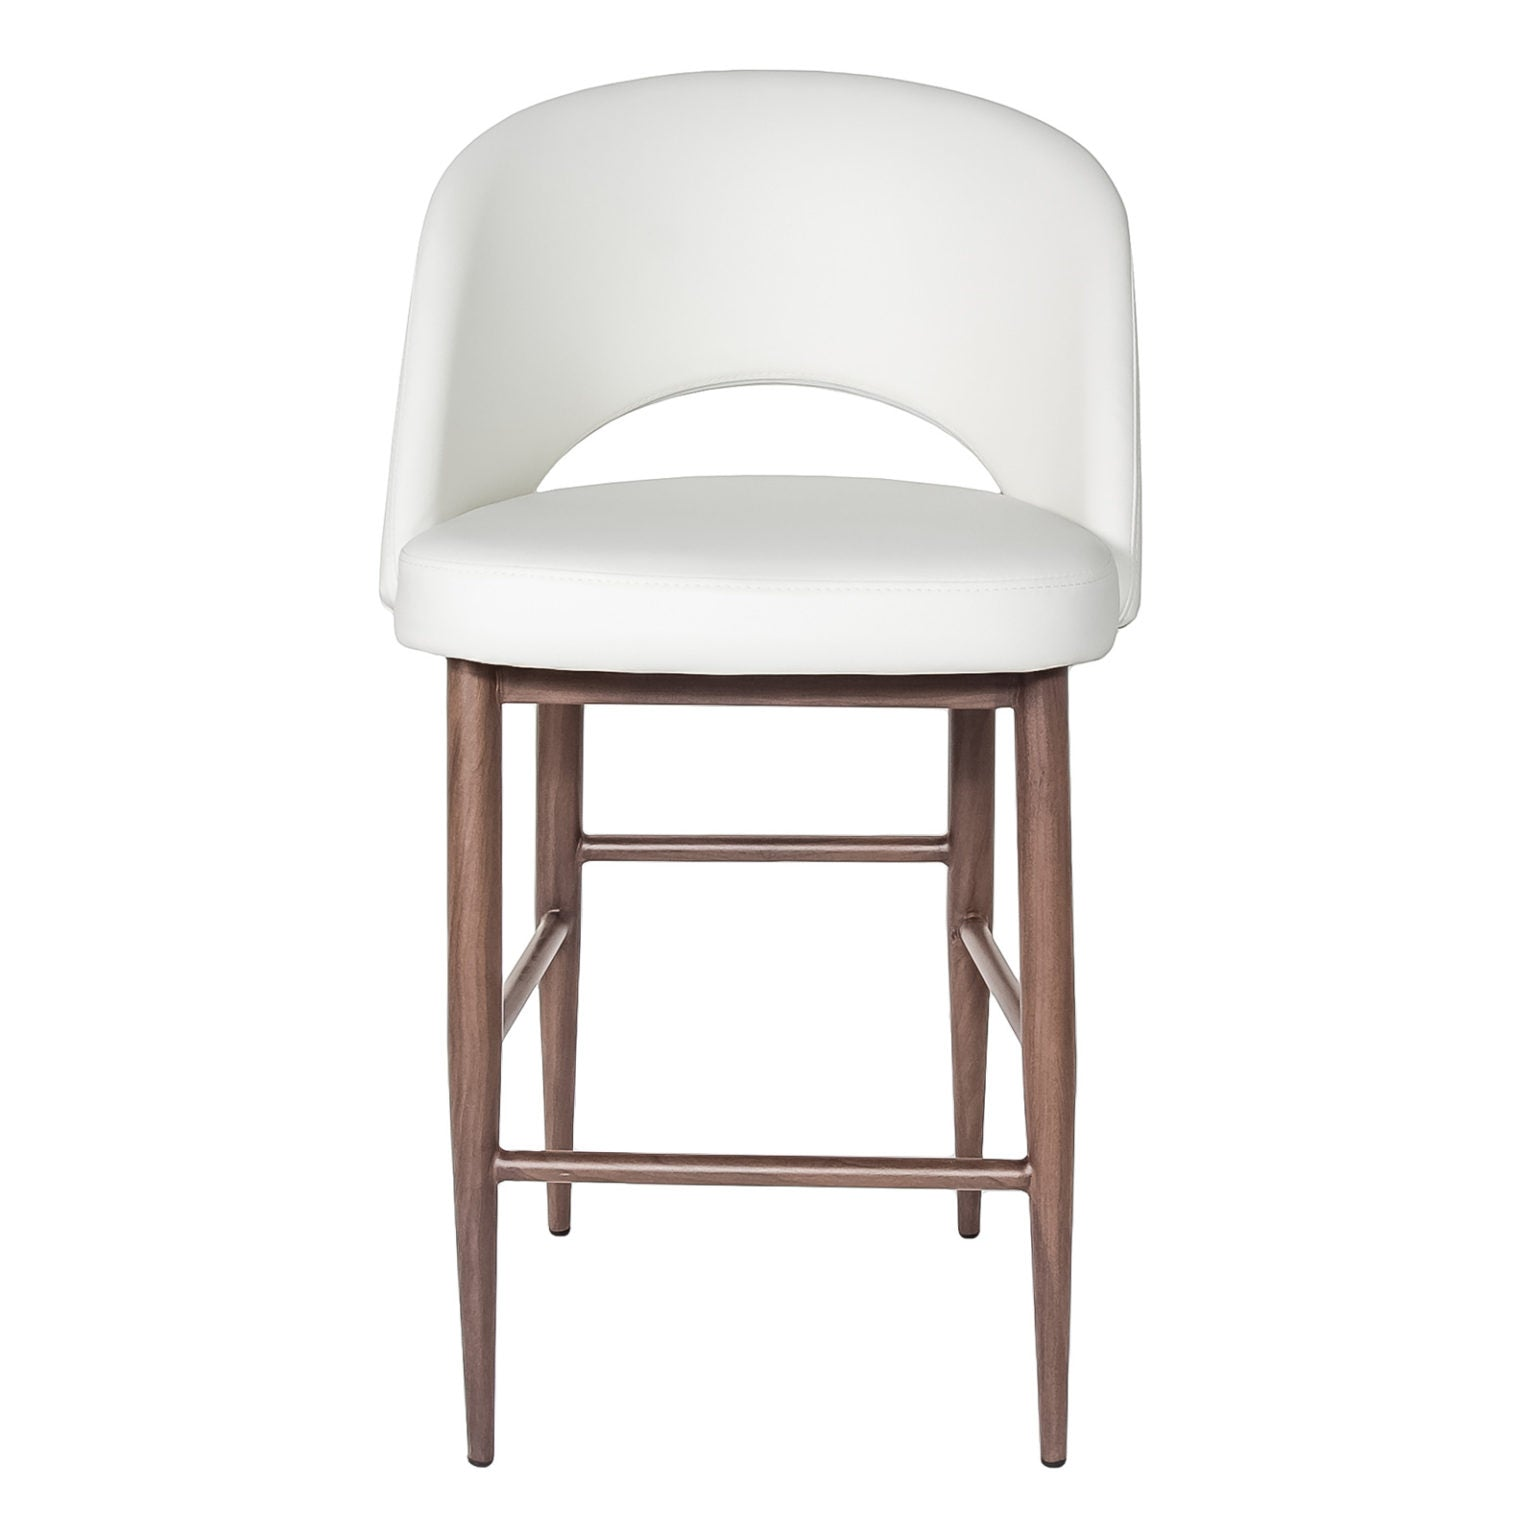 Turner Counter Stool - White with Dark Walnut base